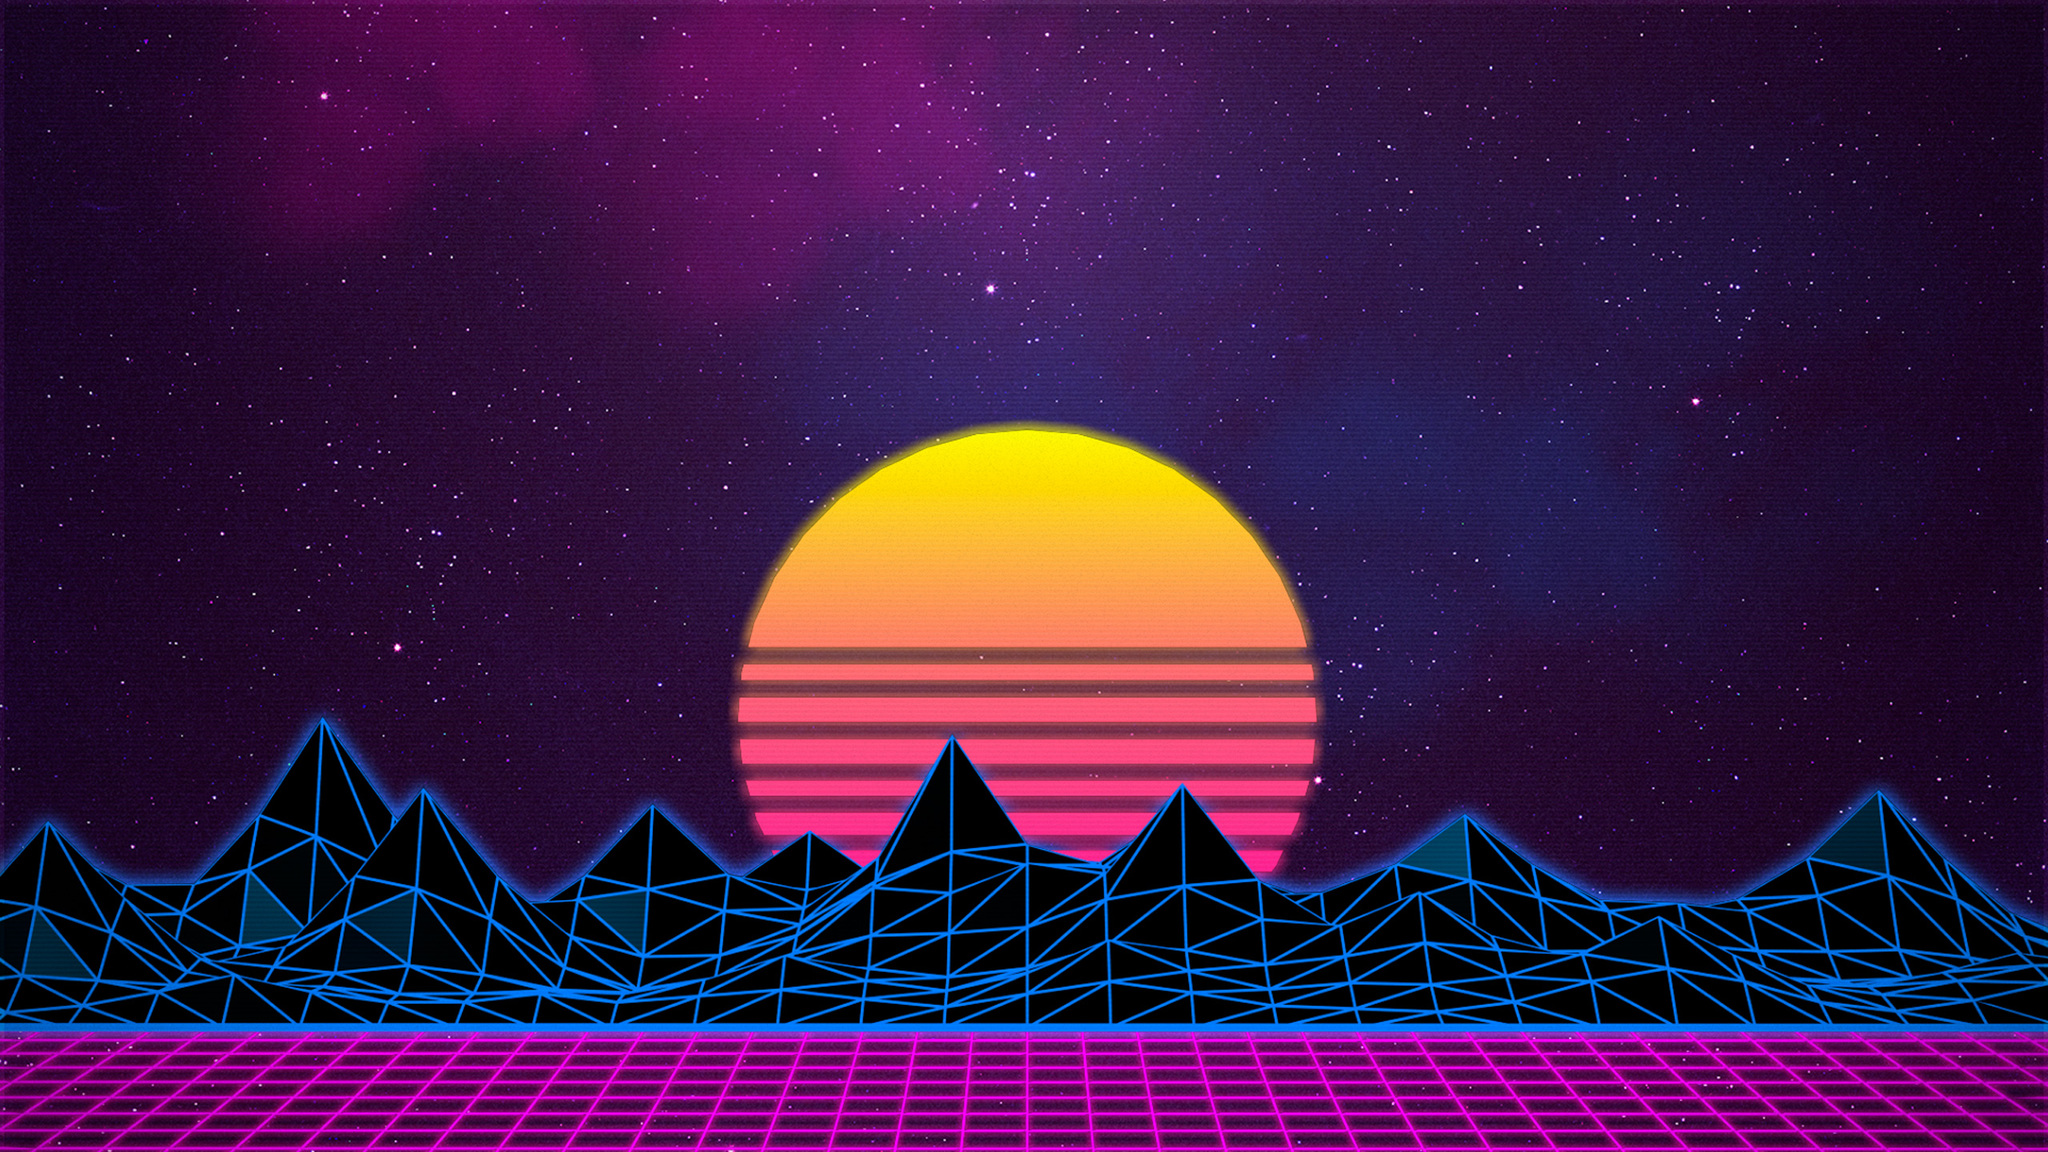 2048x1152 Retrowave 2048x1152 Resolution HD 4k Wallpapers